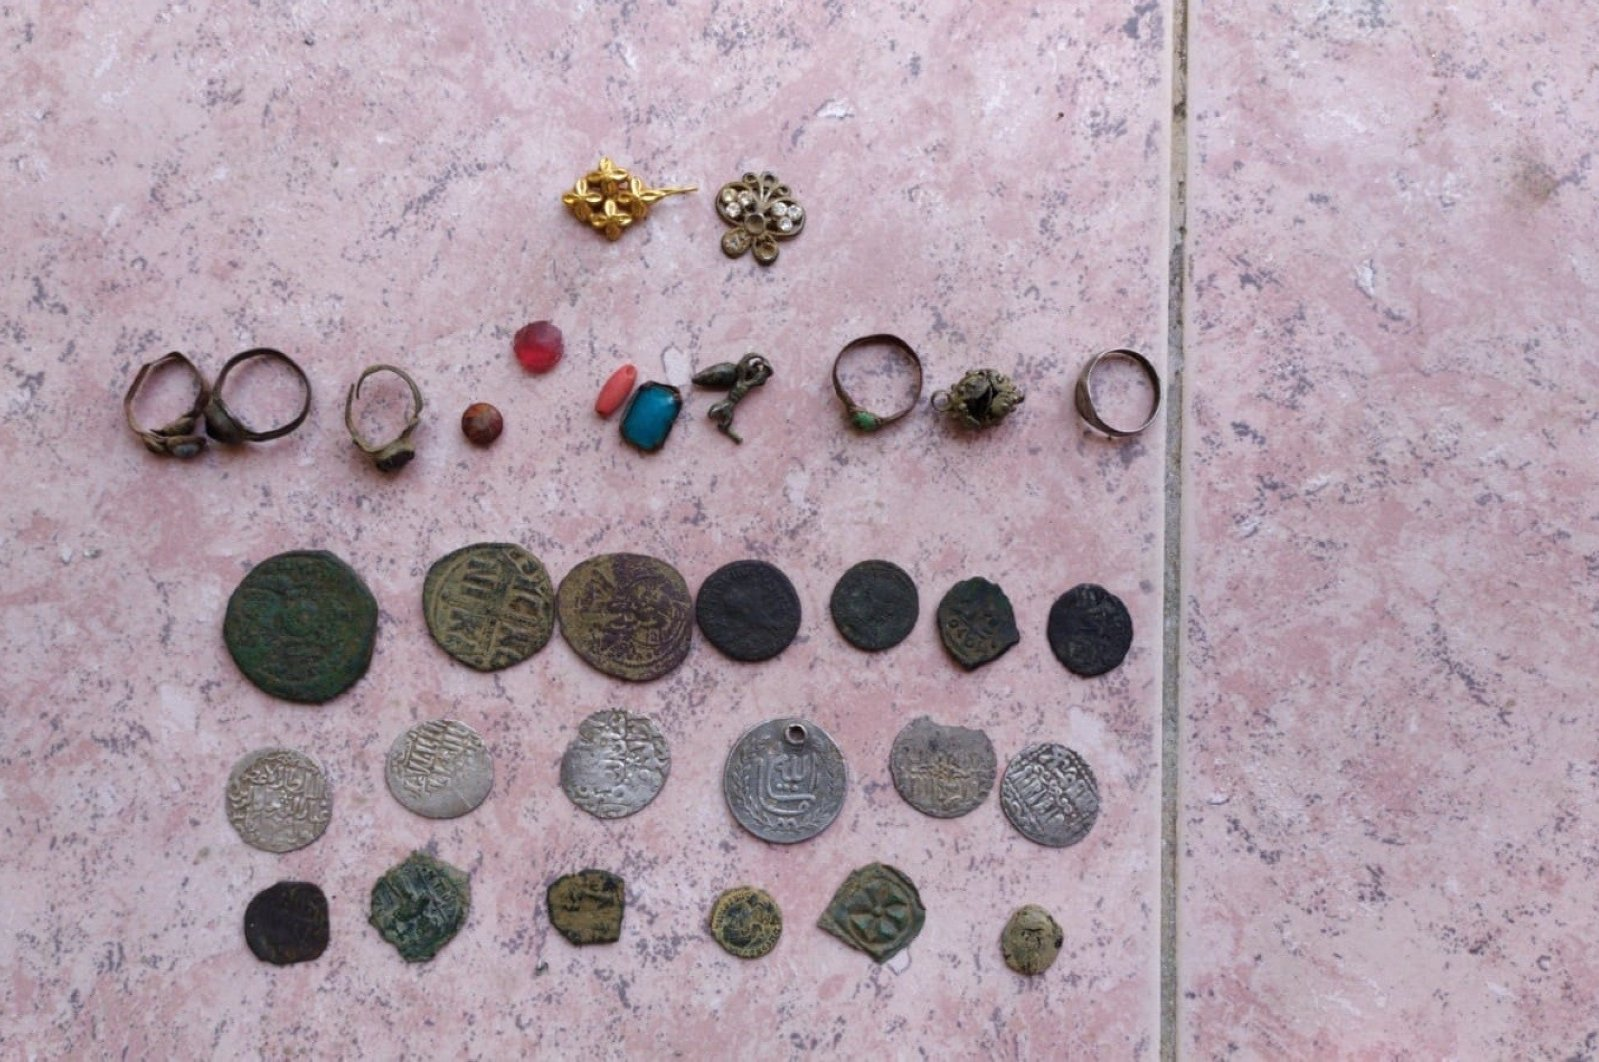 Some artifacts seized in operations are displayed at police headquarters in Izmir, western Turkey, Aug. 13, 2020.